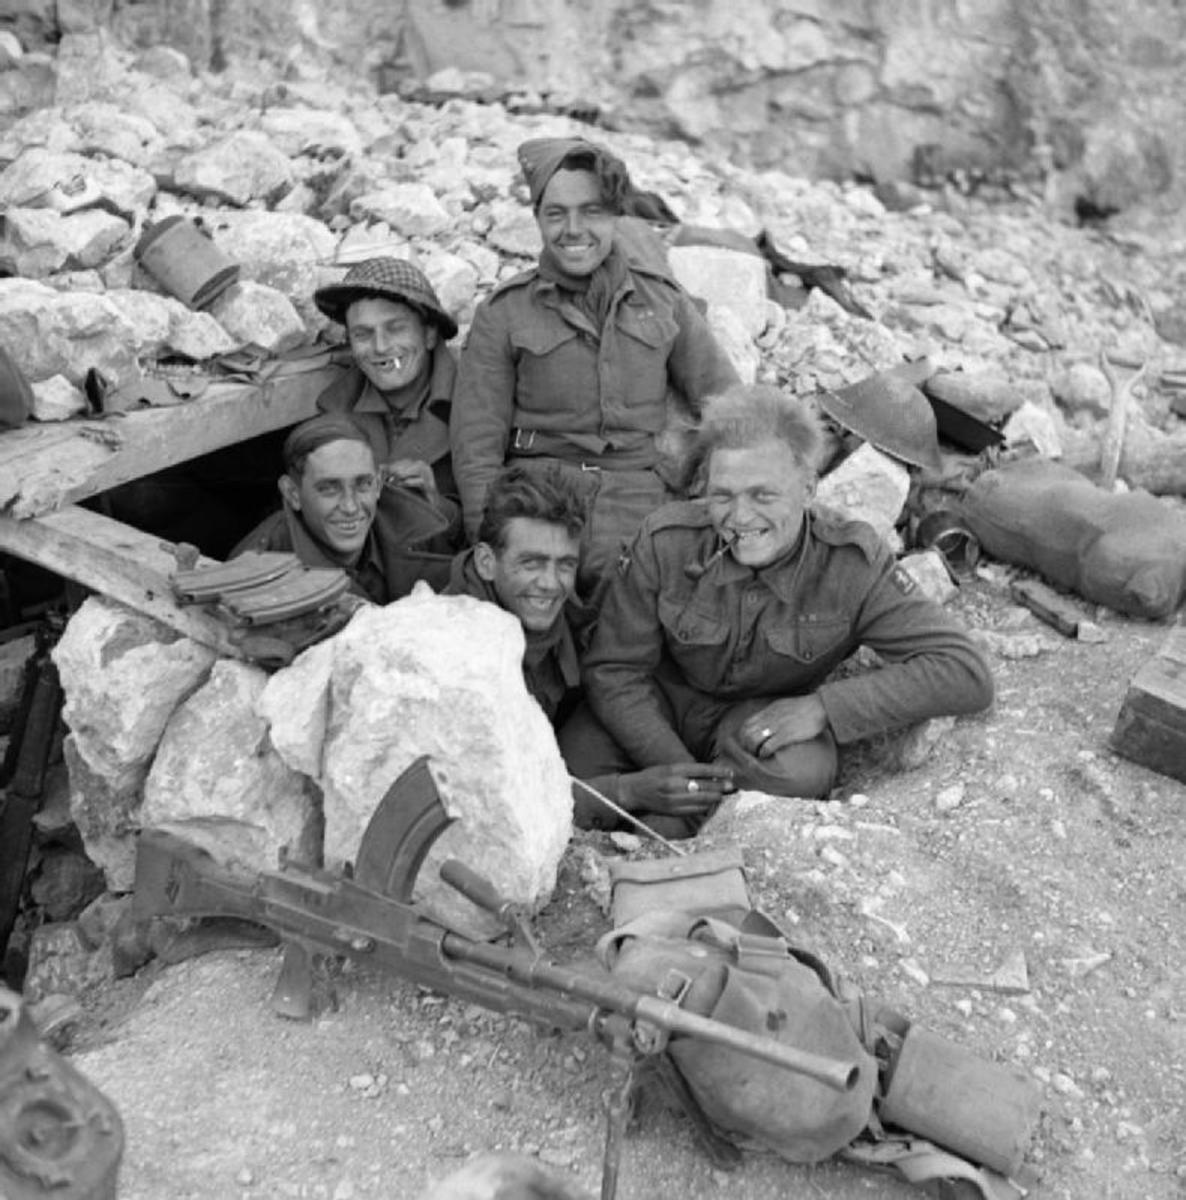 Men of the Royal West Kents hold a dugout on Monastery Hill - their regimental comrades in N E India (overlooking Burma) had it far worse